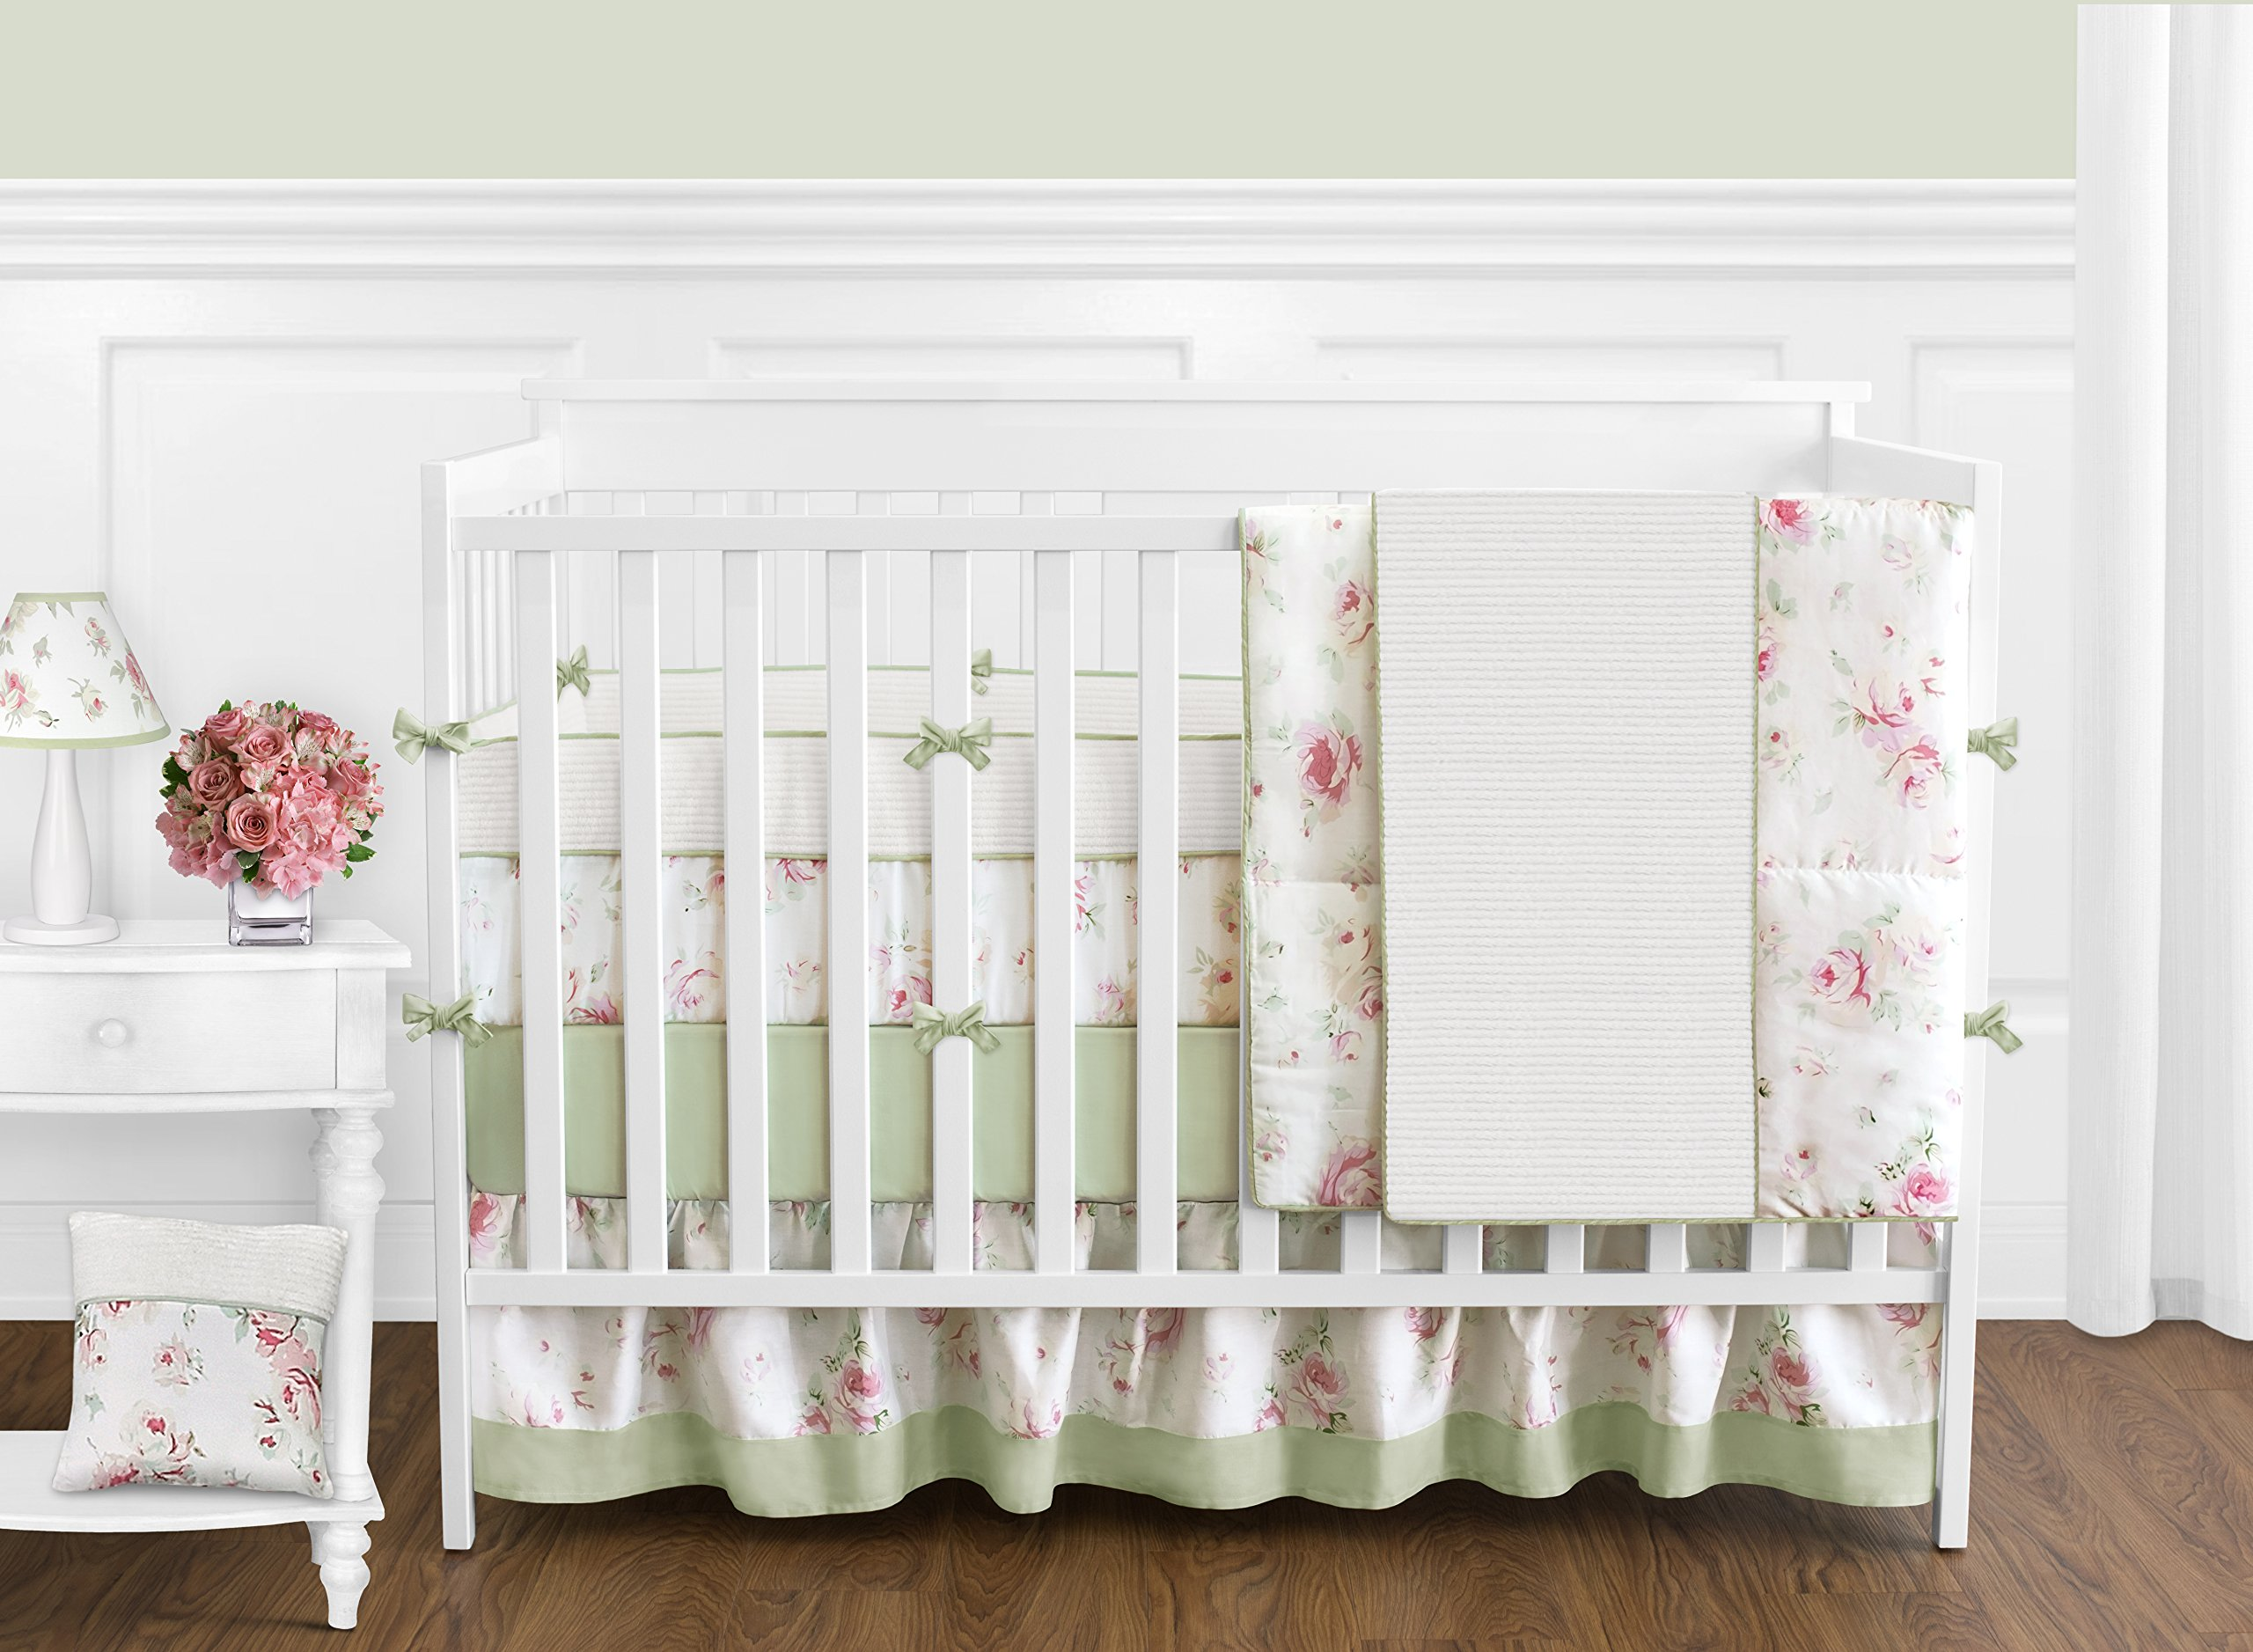 Sweet Jojo Designs Baby and Kids Clothes Laundry Hamper for for Riley's Roses Bedding